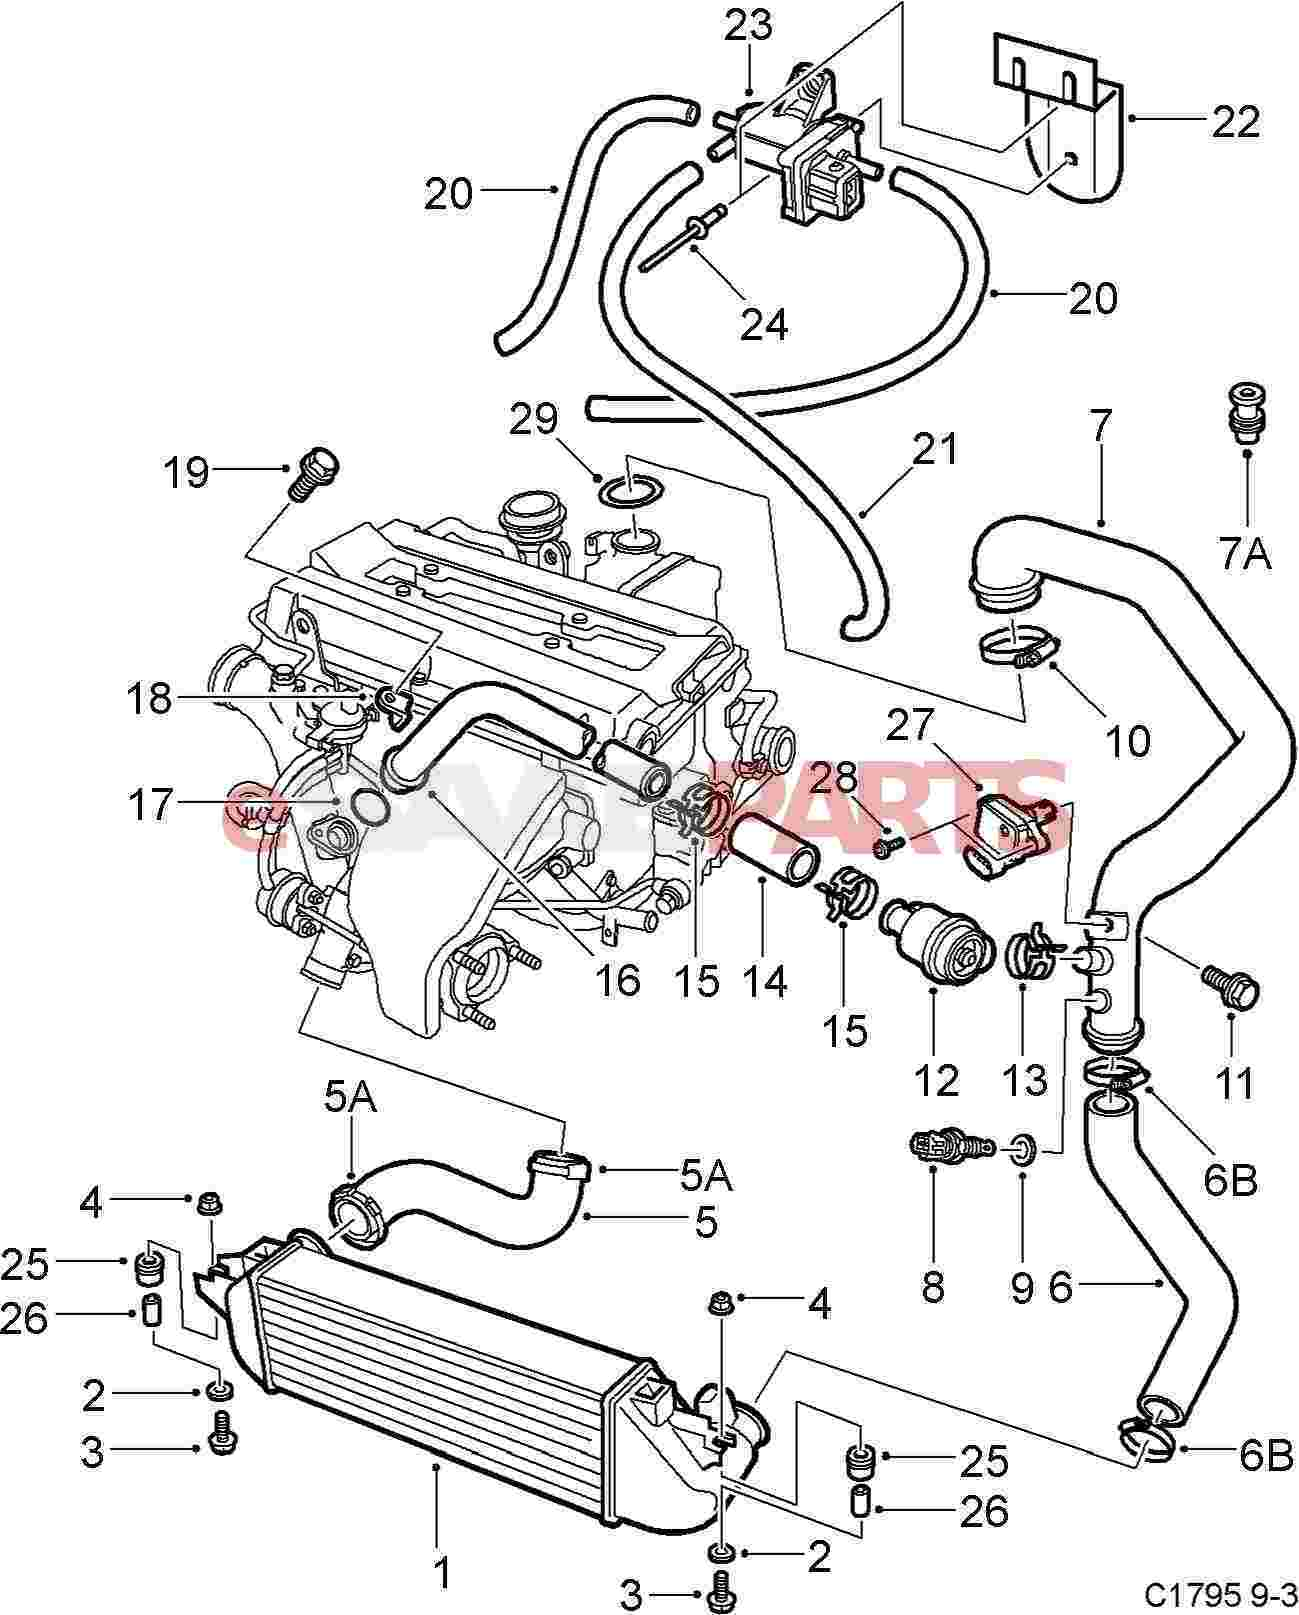 hight resolution of 1999 saab engine diagram wiring diagram todays rh 14 15 9 1813weddingbarn com saab 9000 cs turbo saab 2 3 turbocharged engines